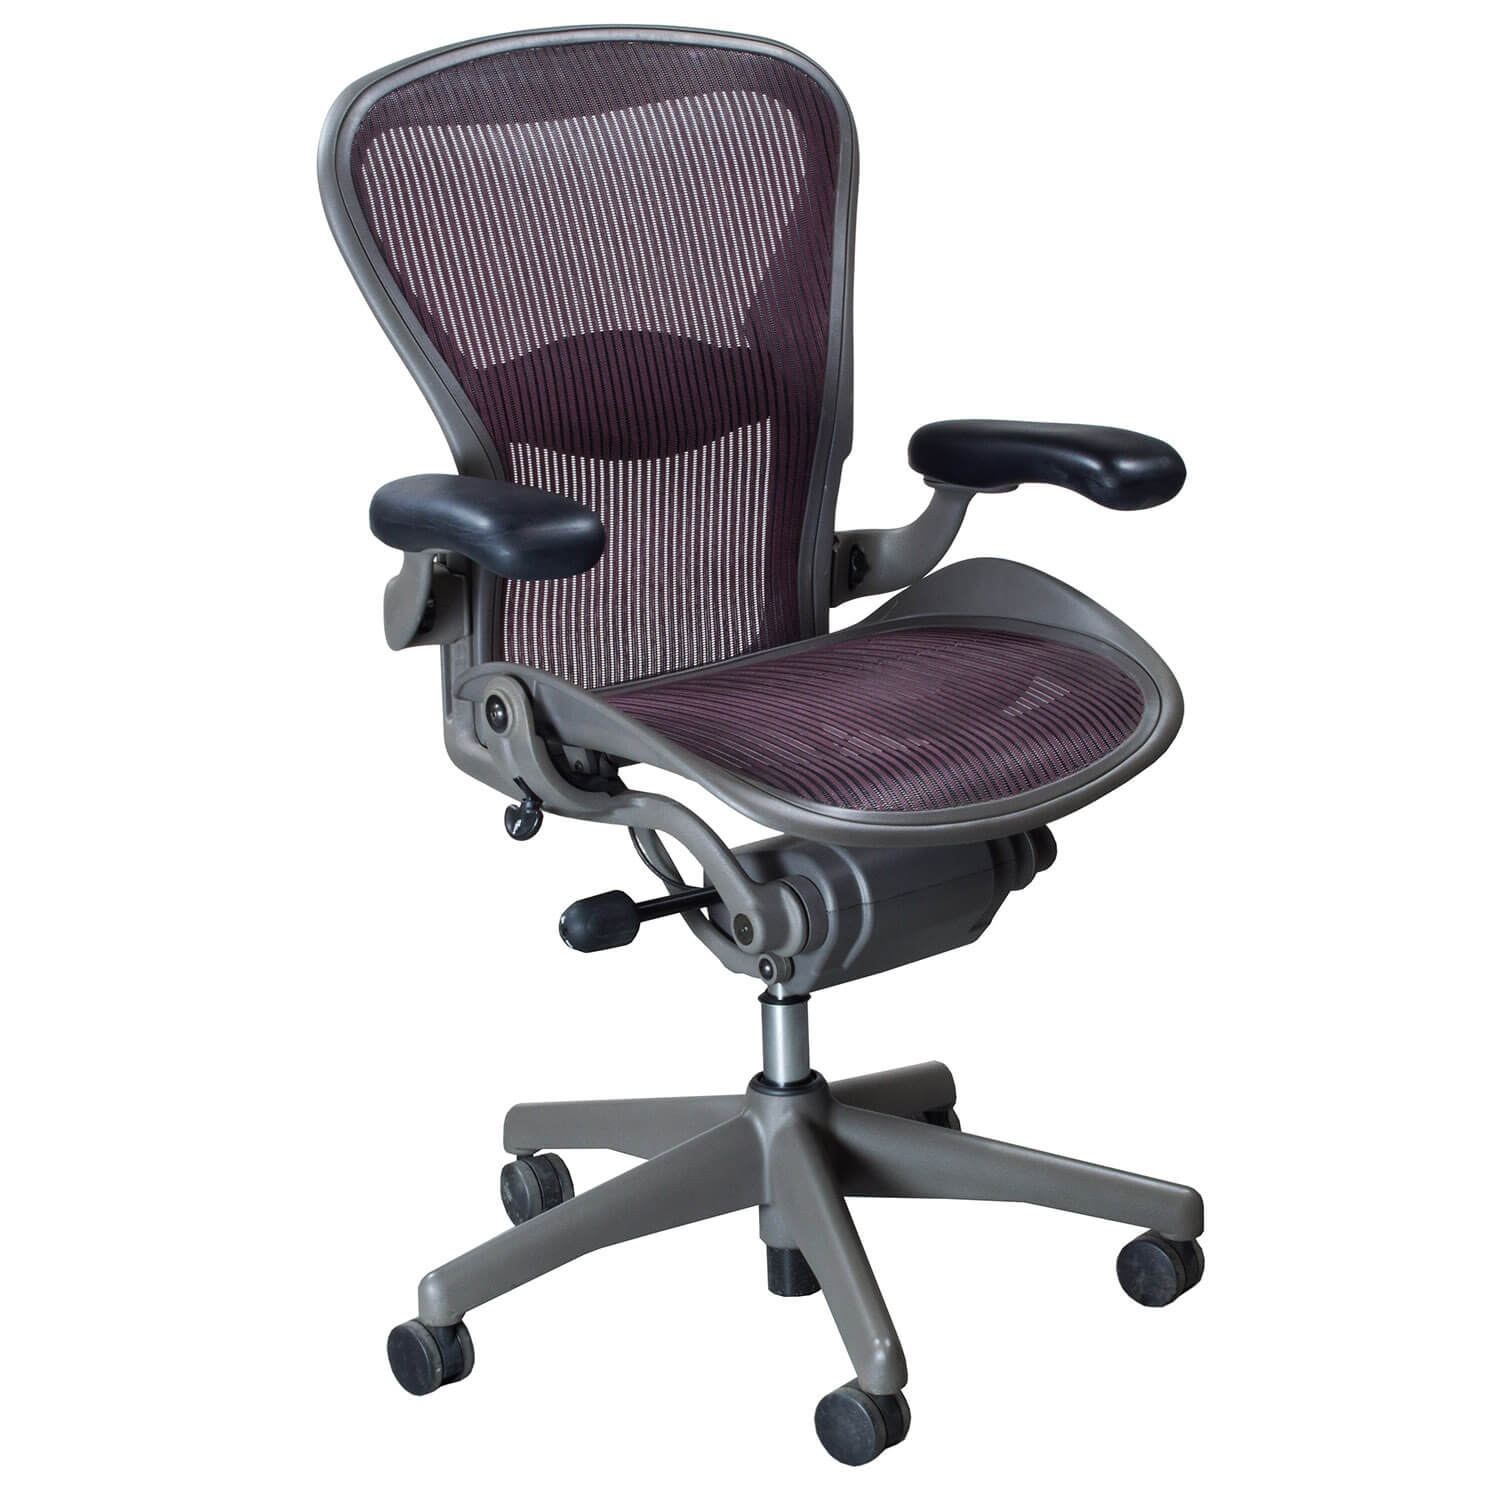 Aeron Chair Alternative Aeron Chair Second Hand Office Chairs Used Office